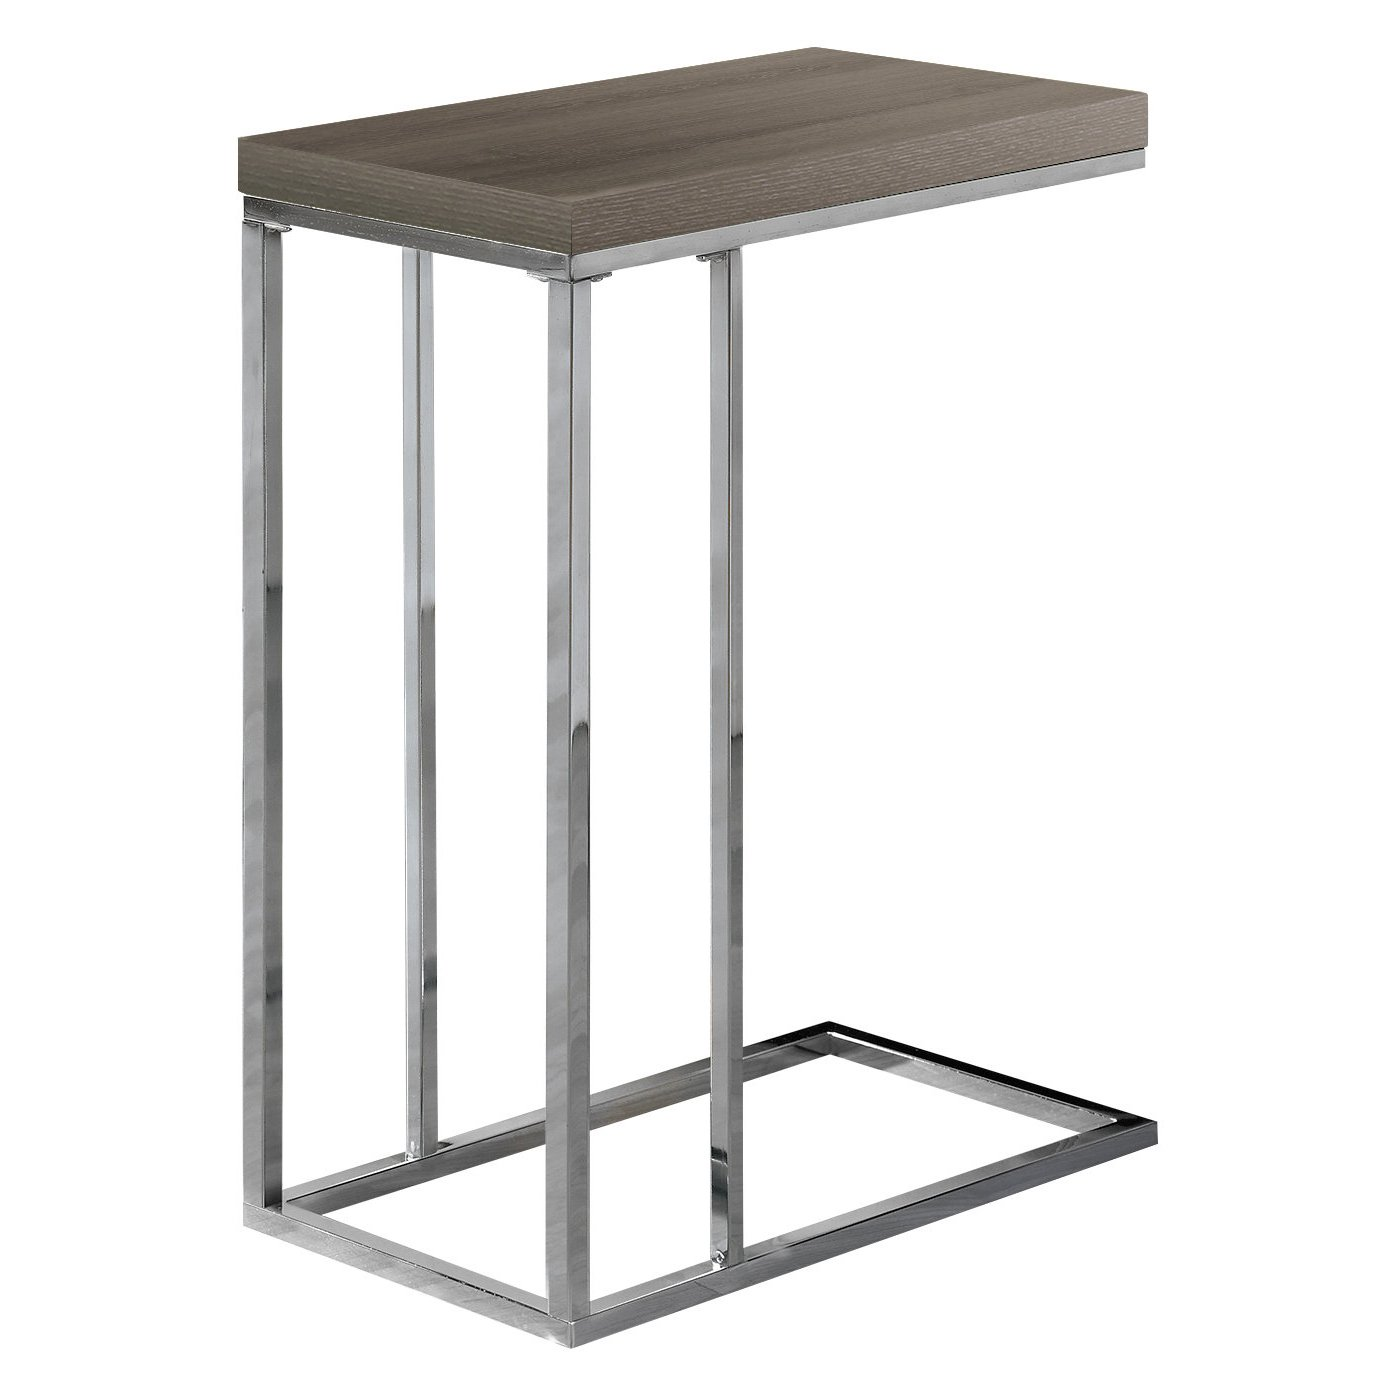 monarch specialties accent table chrome metal dark taupe kitchen dining small outdoor patio furniture slim glass side house interior ideas sears best desk lamp foyer bathroom